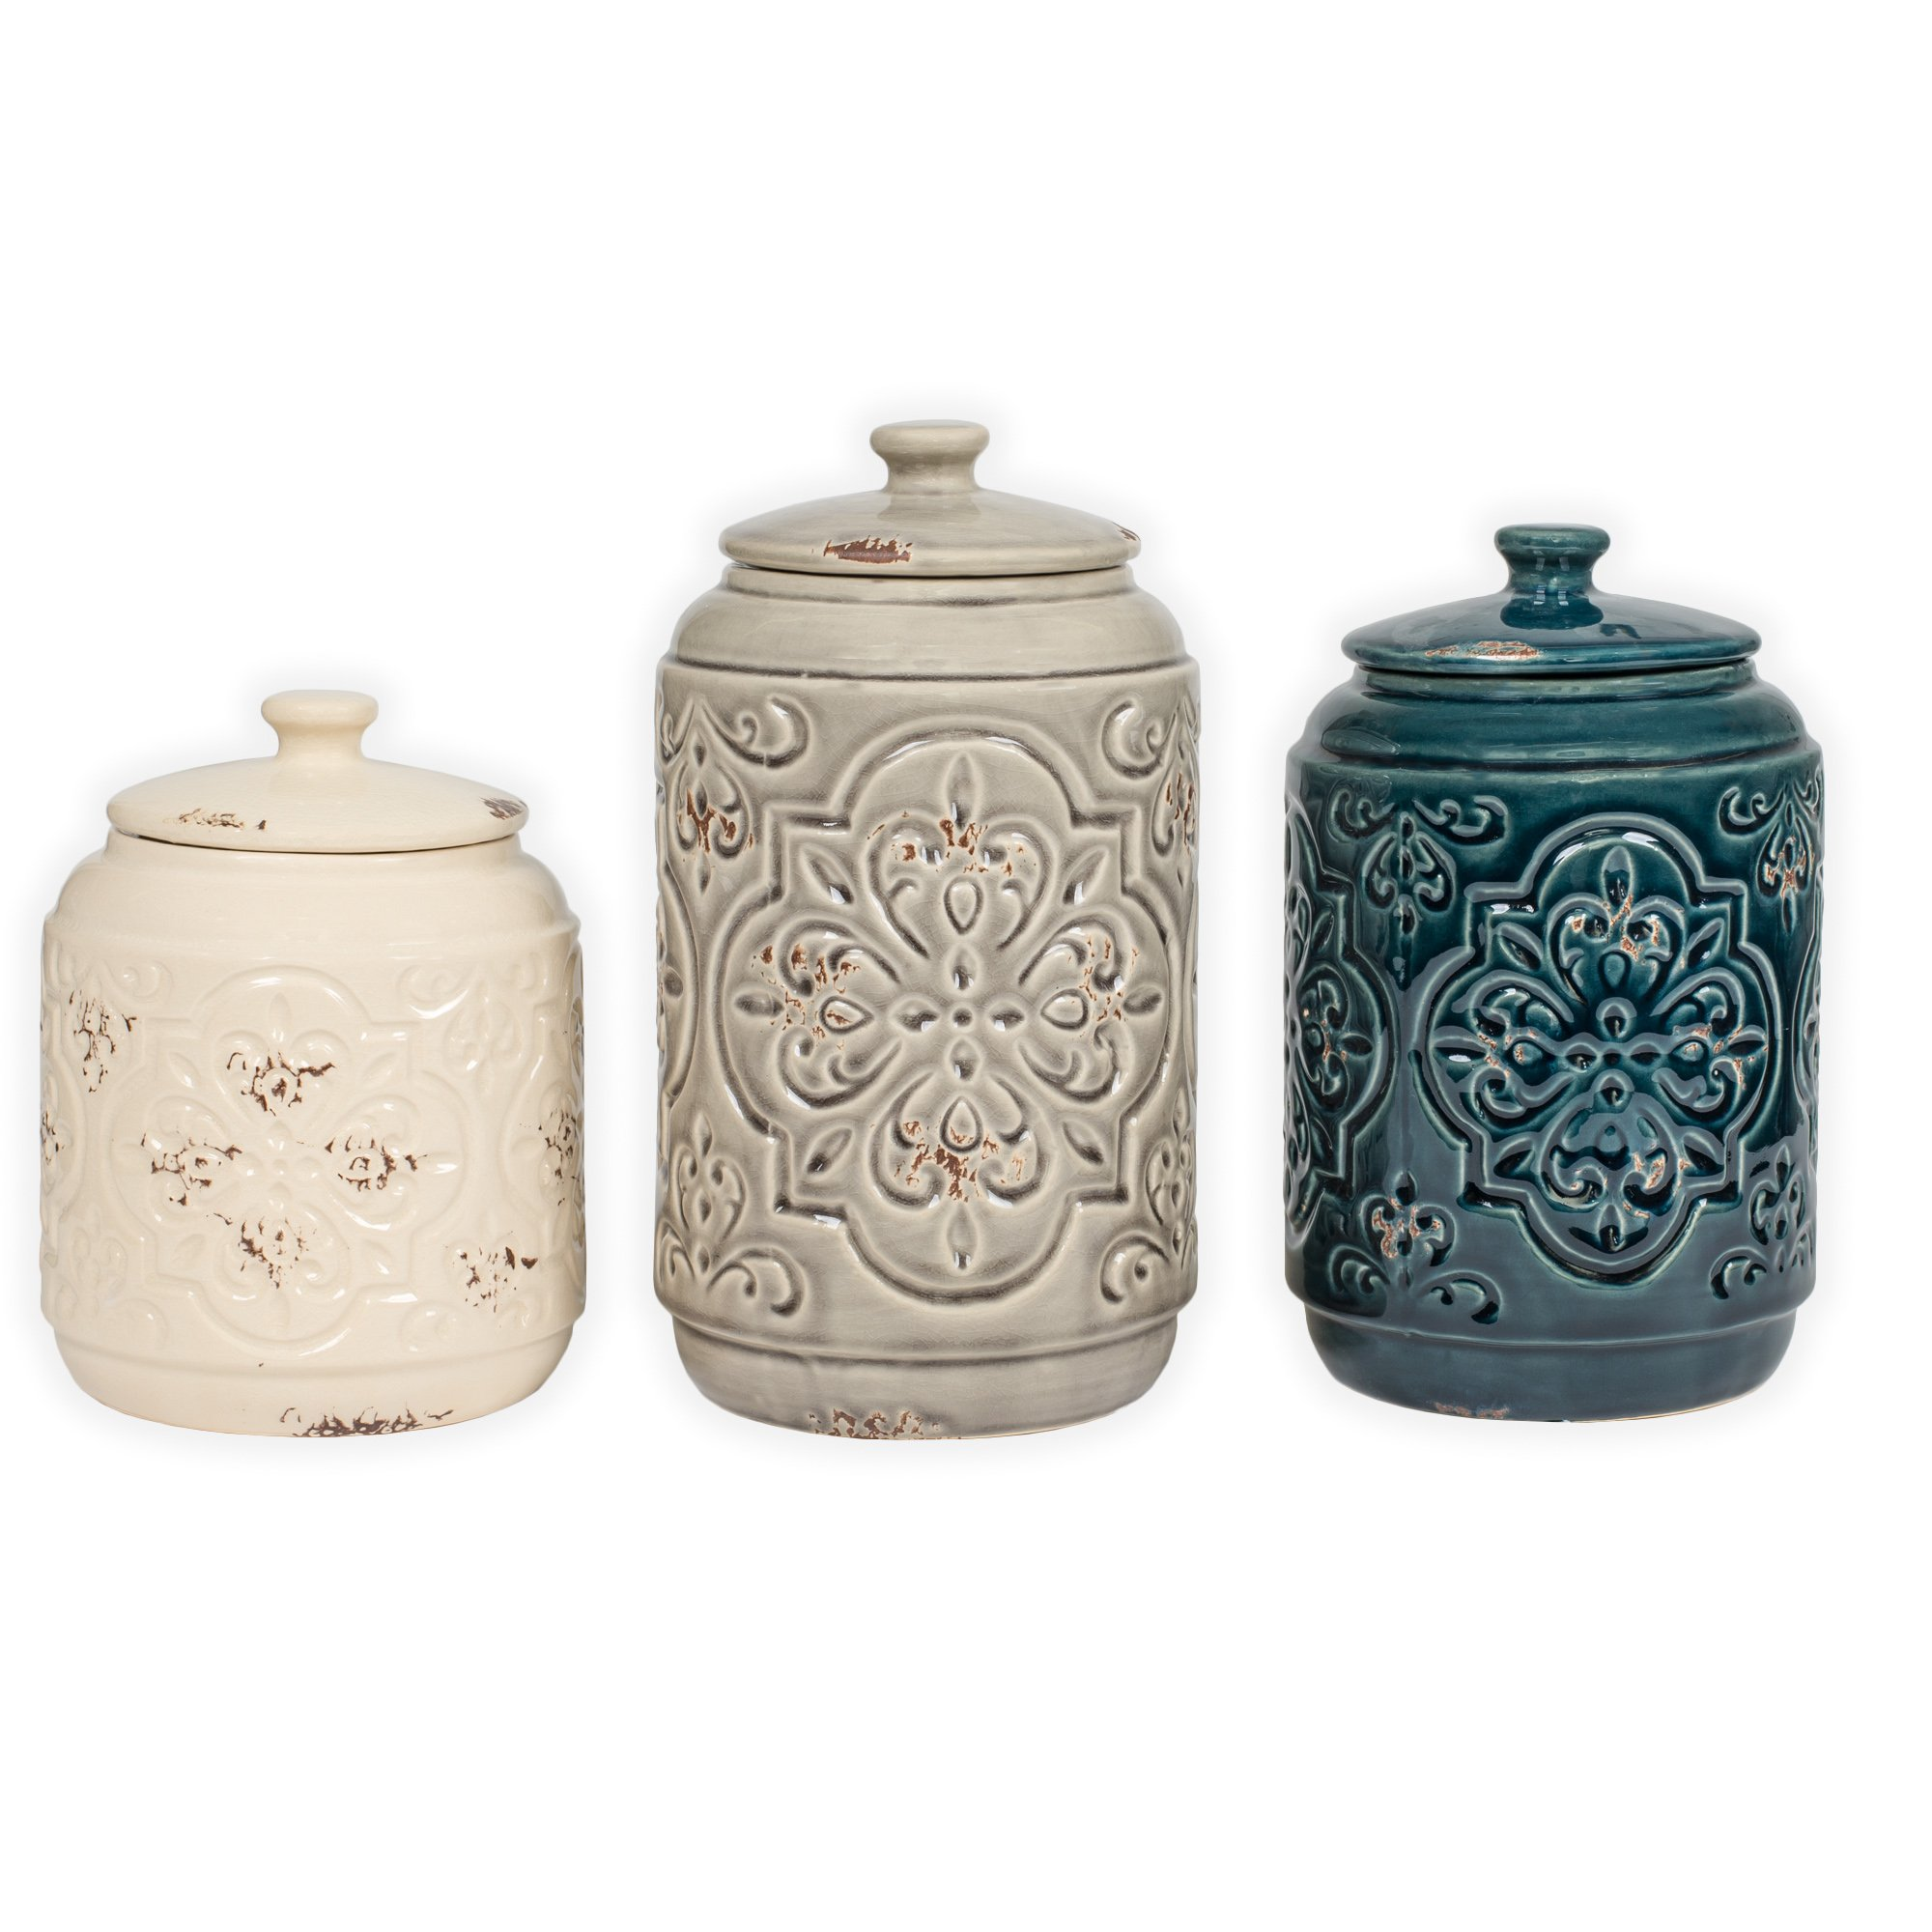 Ceramic Distressed Quilt Pattern Blue Grey Cream 3 Pc Canister Set by Drew Derose